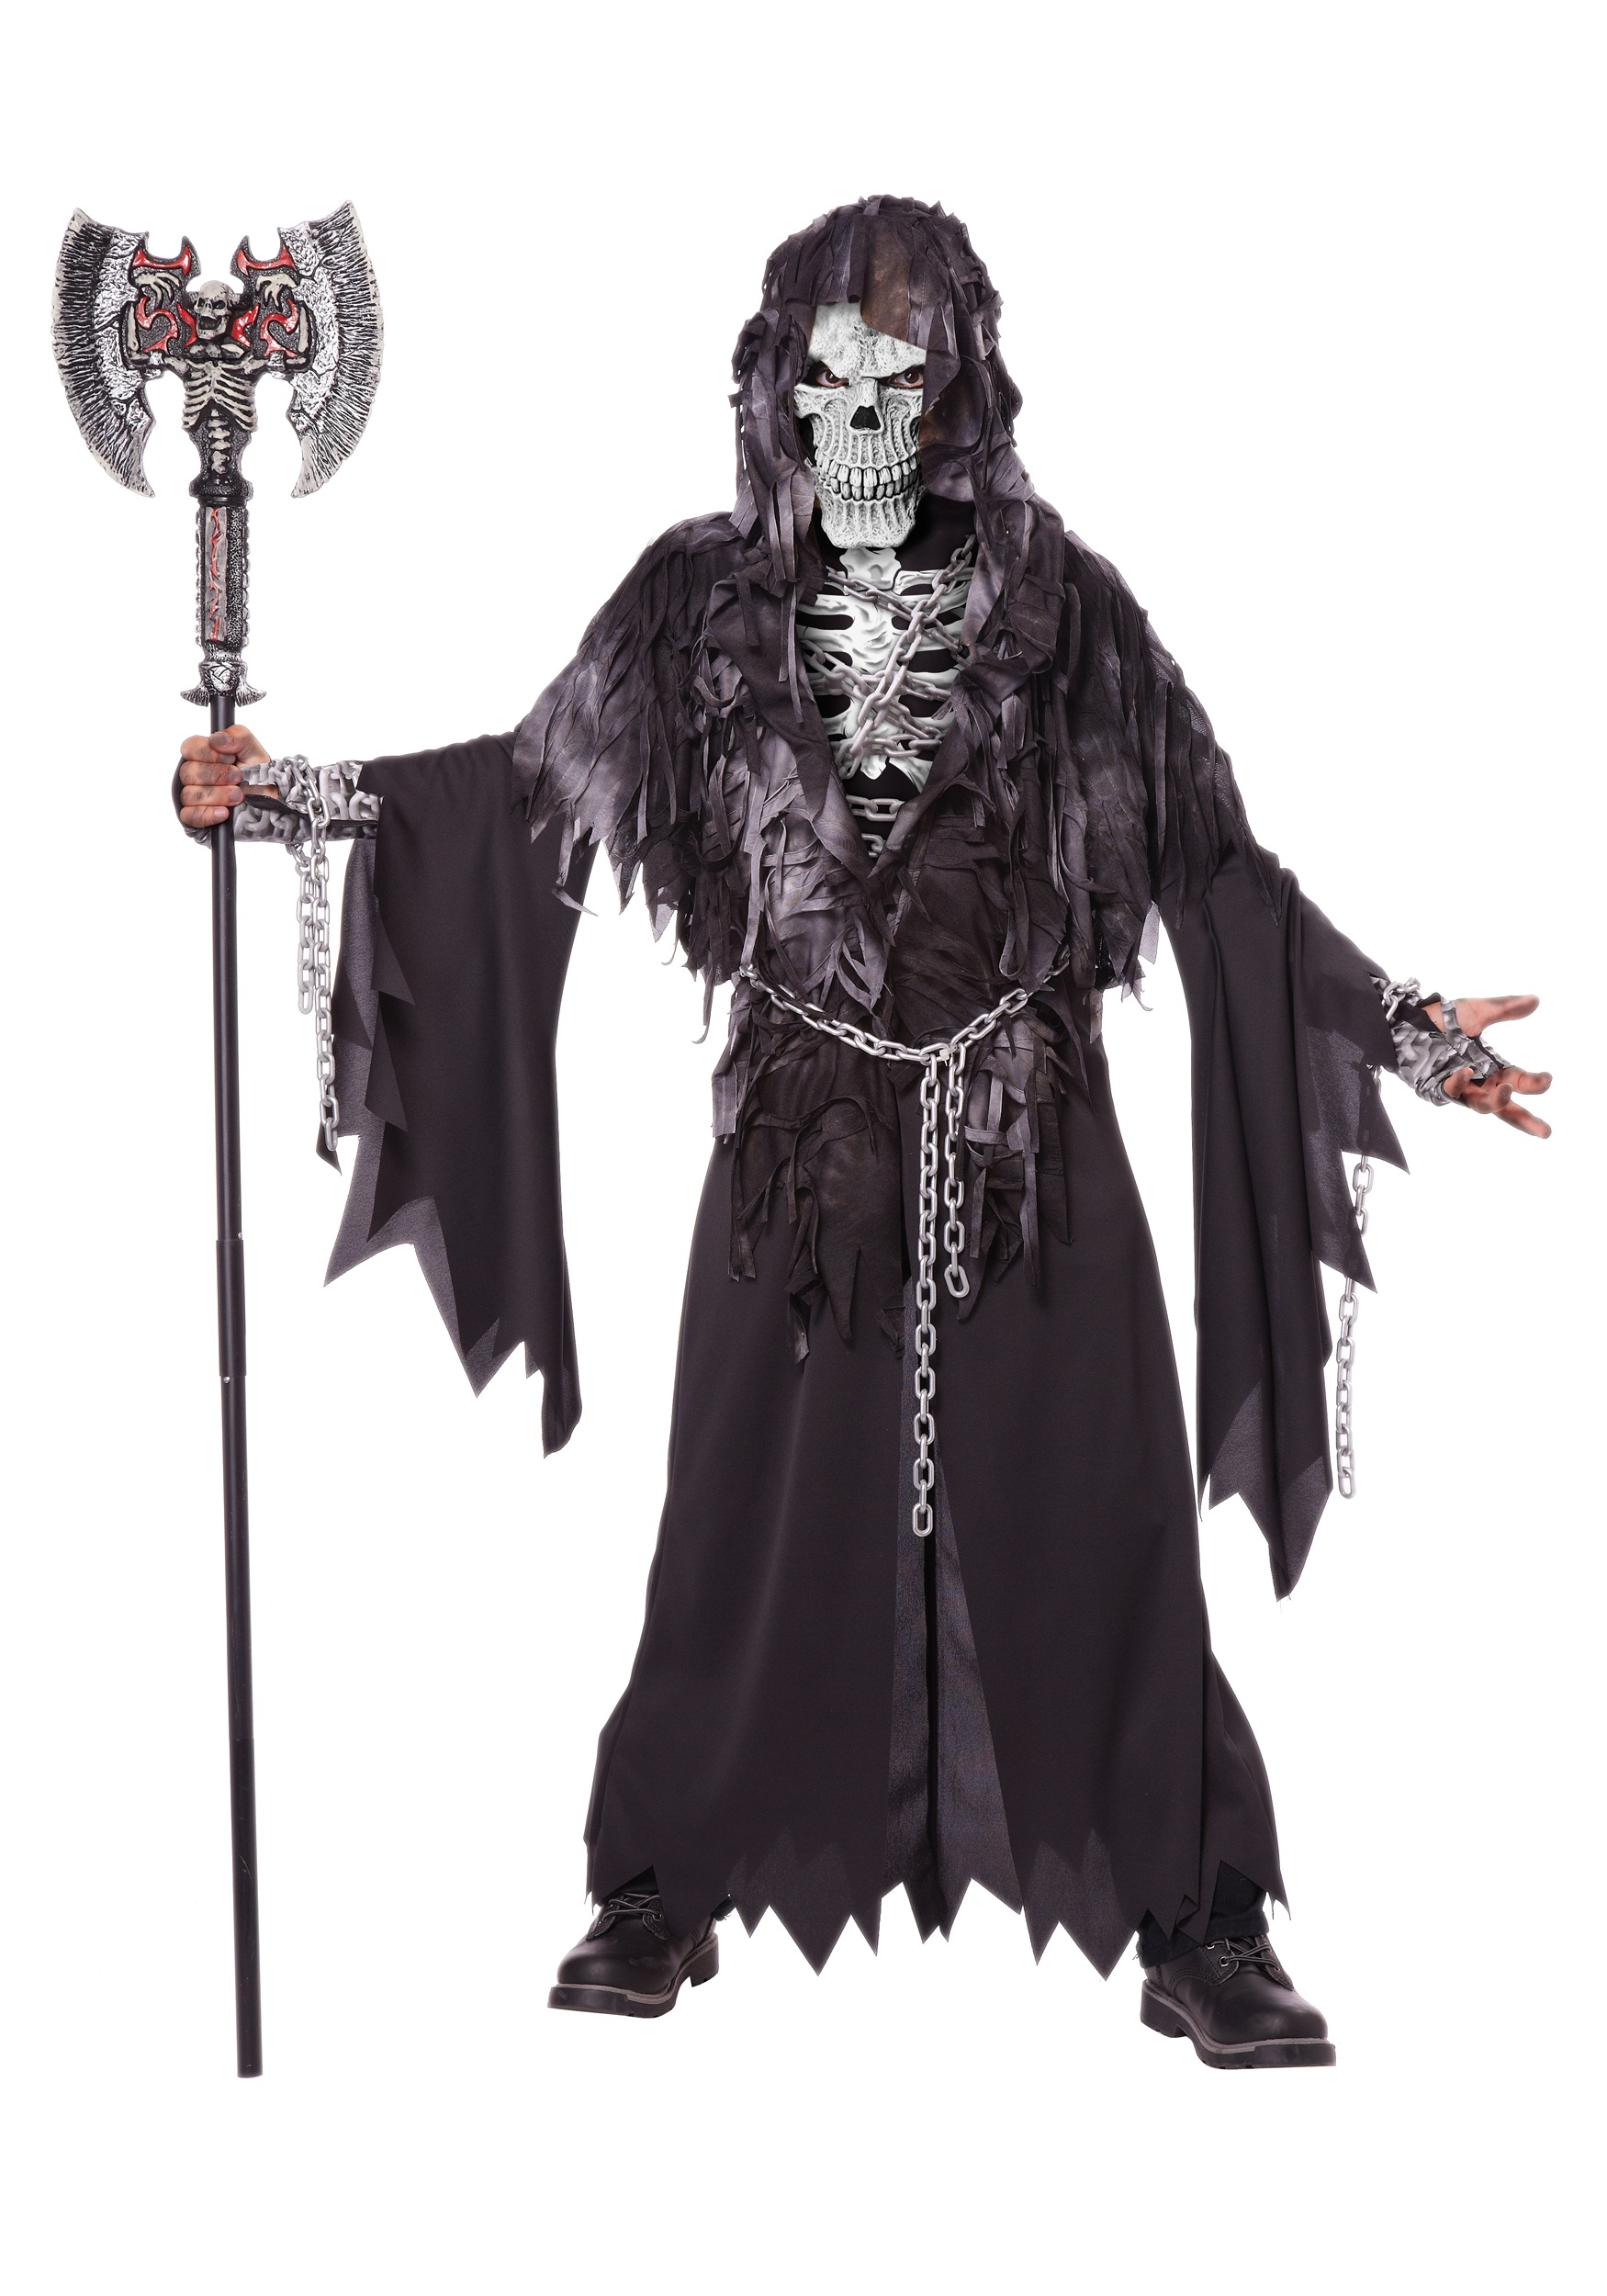 Childu0027s Evil Unchained Skeleton Costume  sc 1 st  Halloween Costumes & Childu0027s Evil Unchained Skeleton Costume - Halloween Costumes